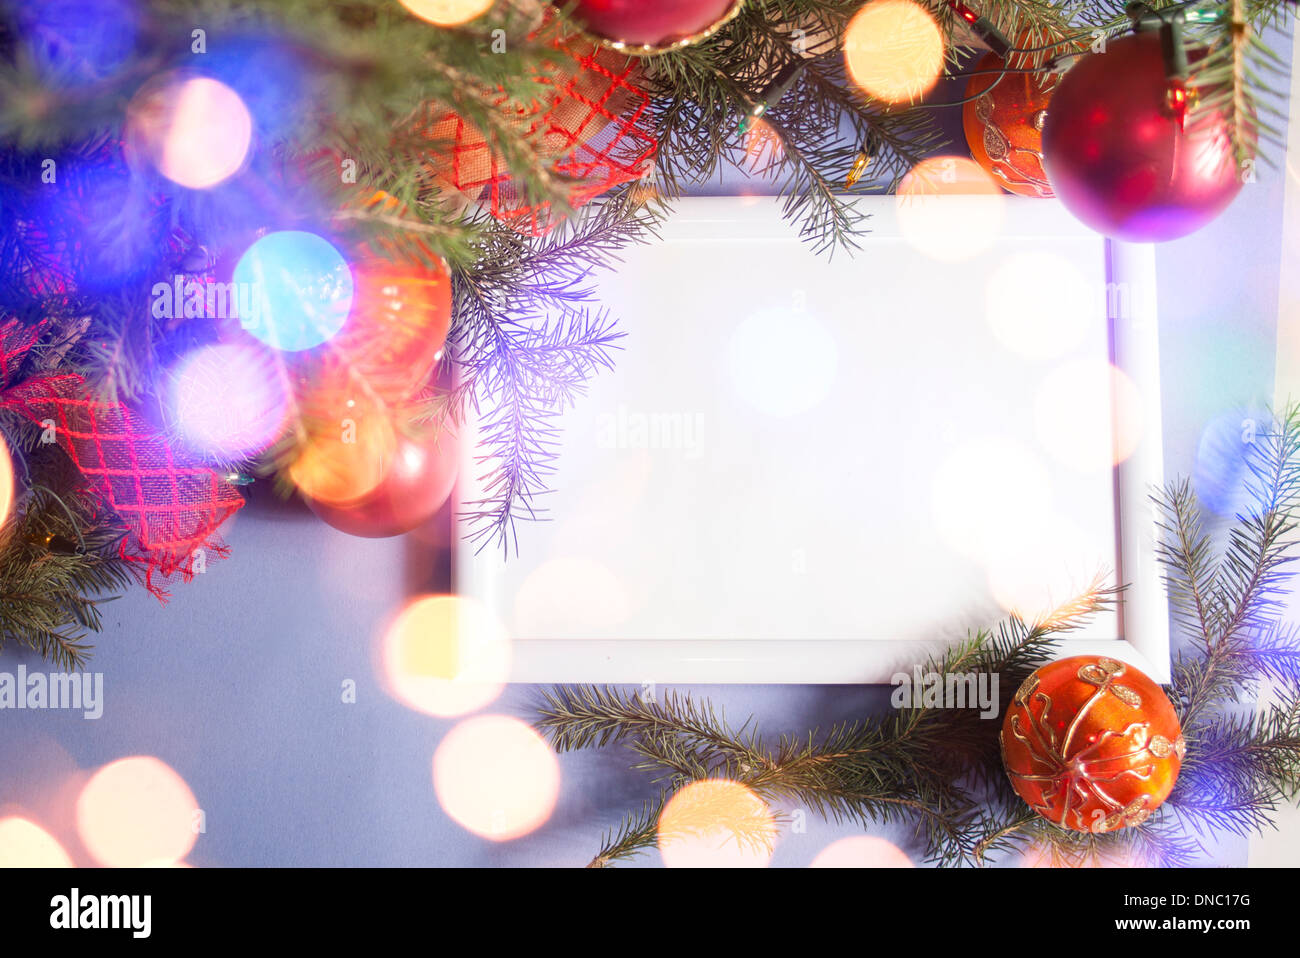 Colorful abstract background with Christmas lights and white frame ...